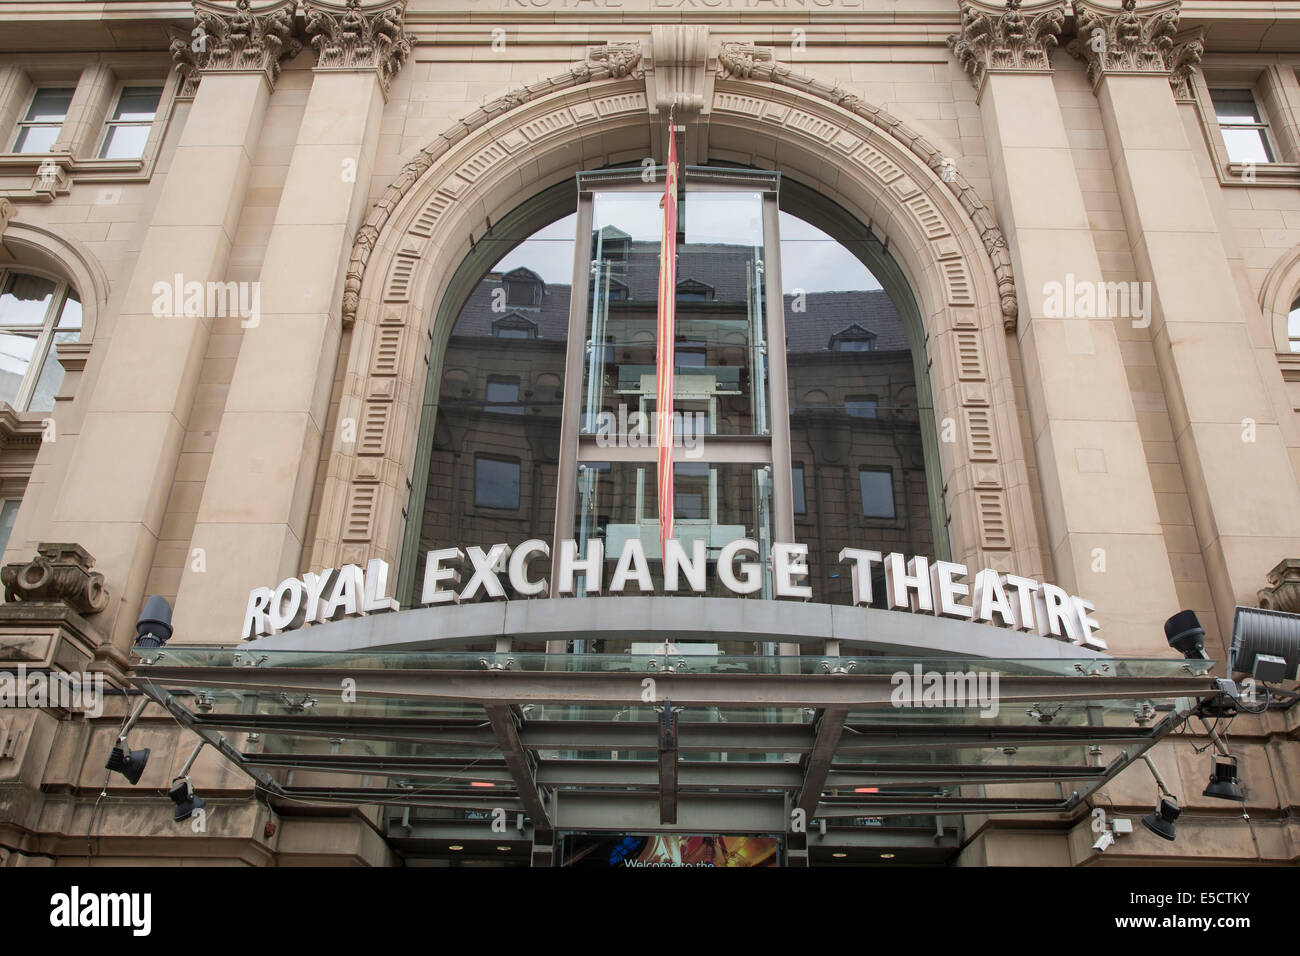 Exterior Manchester Uk Exterior Facade of Royal Exchange Theatre, Manchester, England, UK